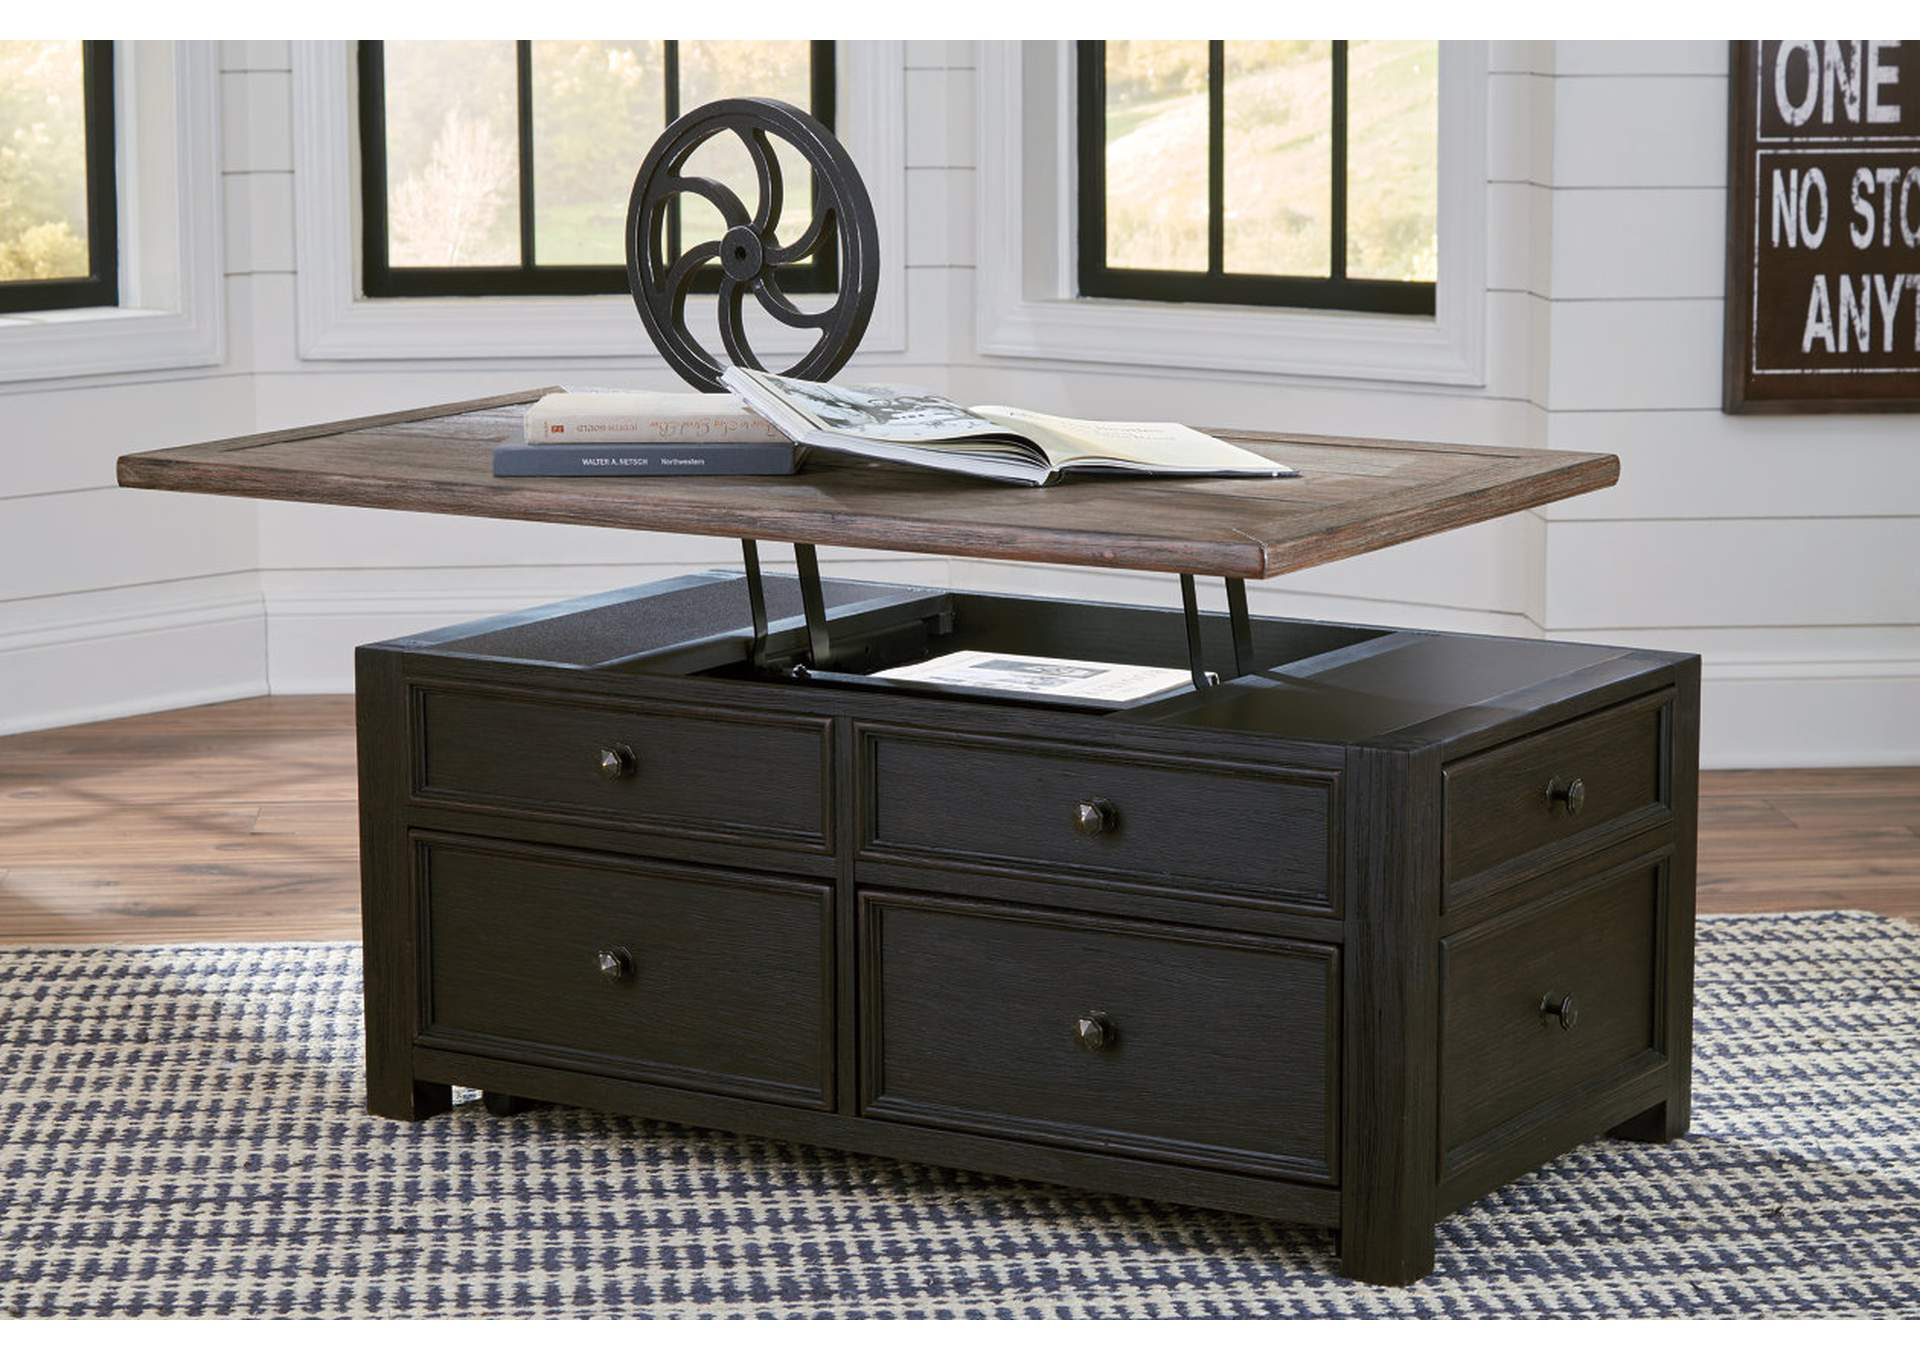 Tyler Creek Grayish Brown/Black Lift Top Cocktail Table,Direct To Consumer Express